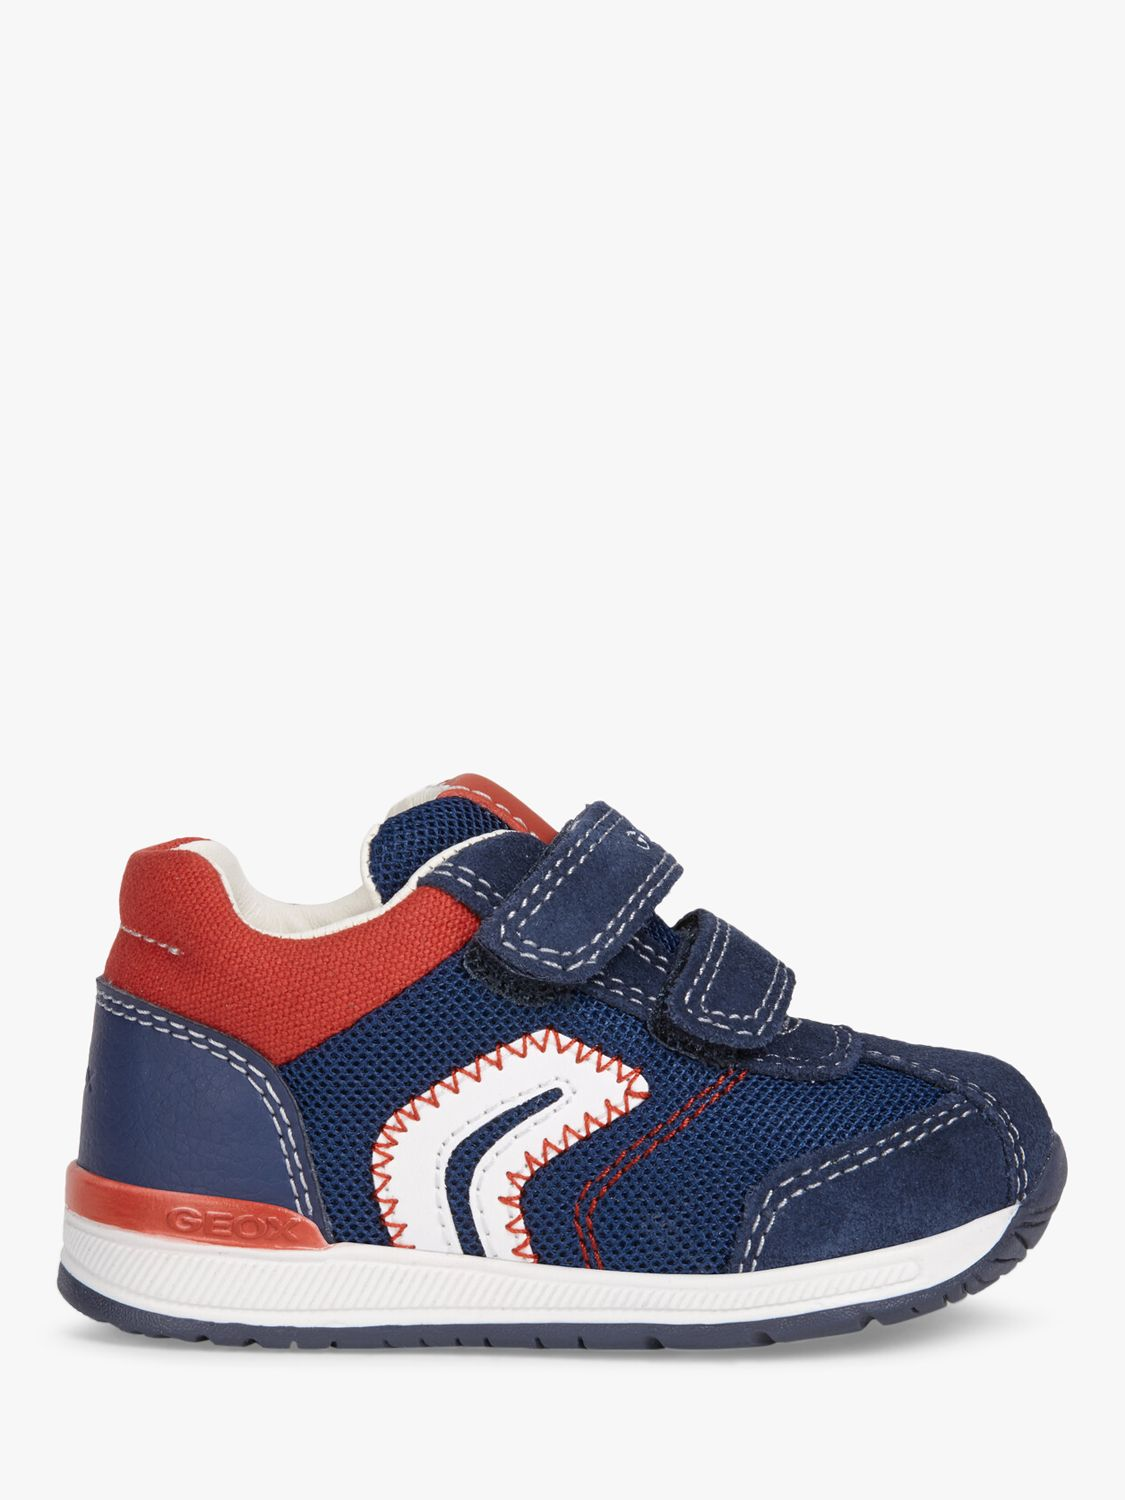 Geox Geox Junior Rishon Riptape Trainers, Navy